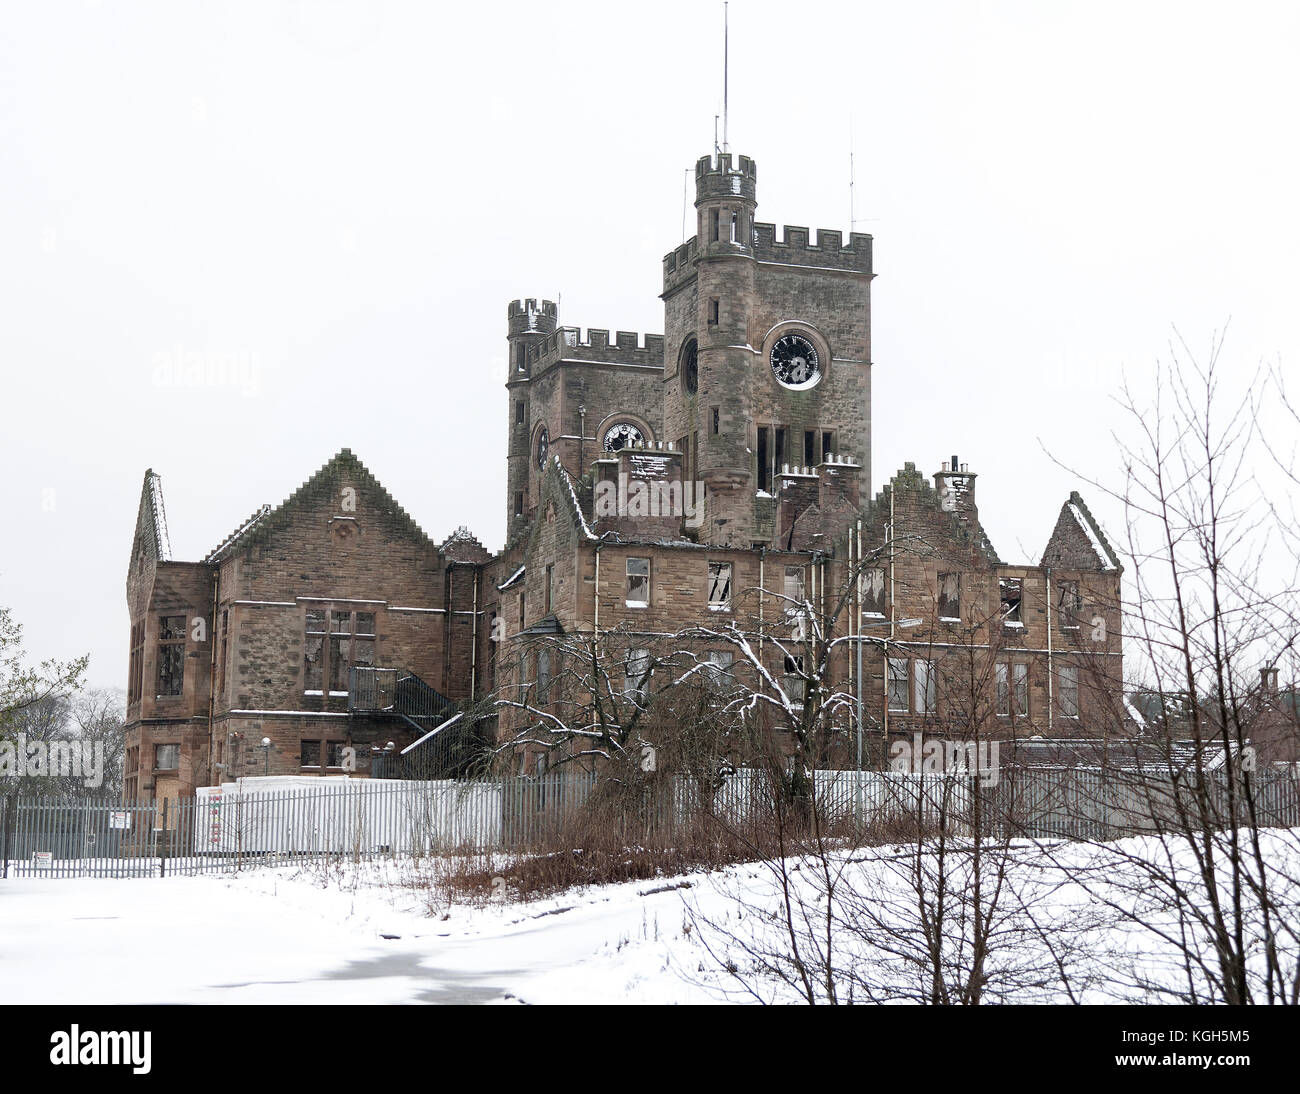 HARTWOOD, SCOTLAND- DECEMBER 03 2011: The old hospital in the snow. Hartwood Hospital is a 19th-century psychiatric - Stock Image